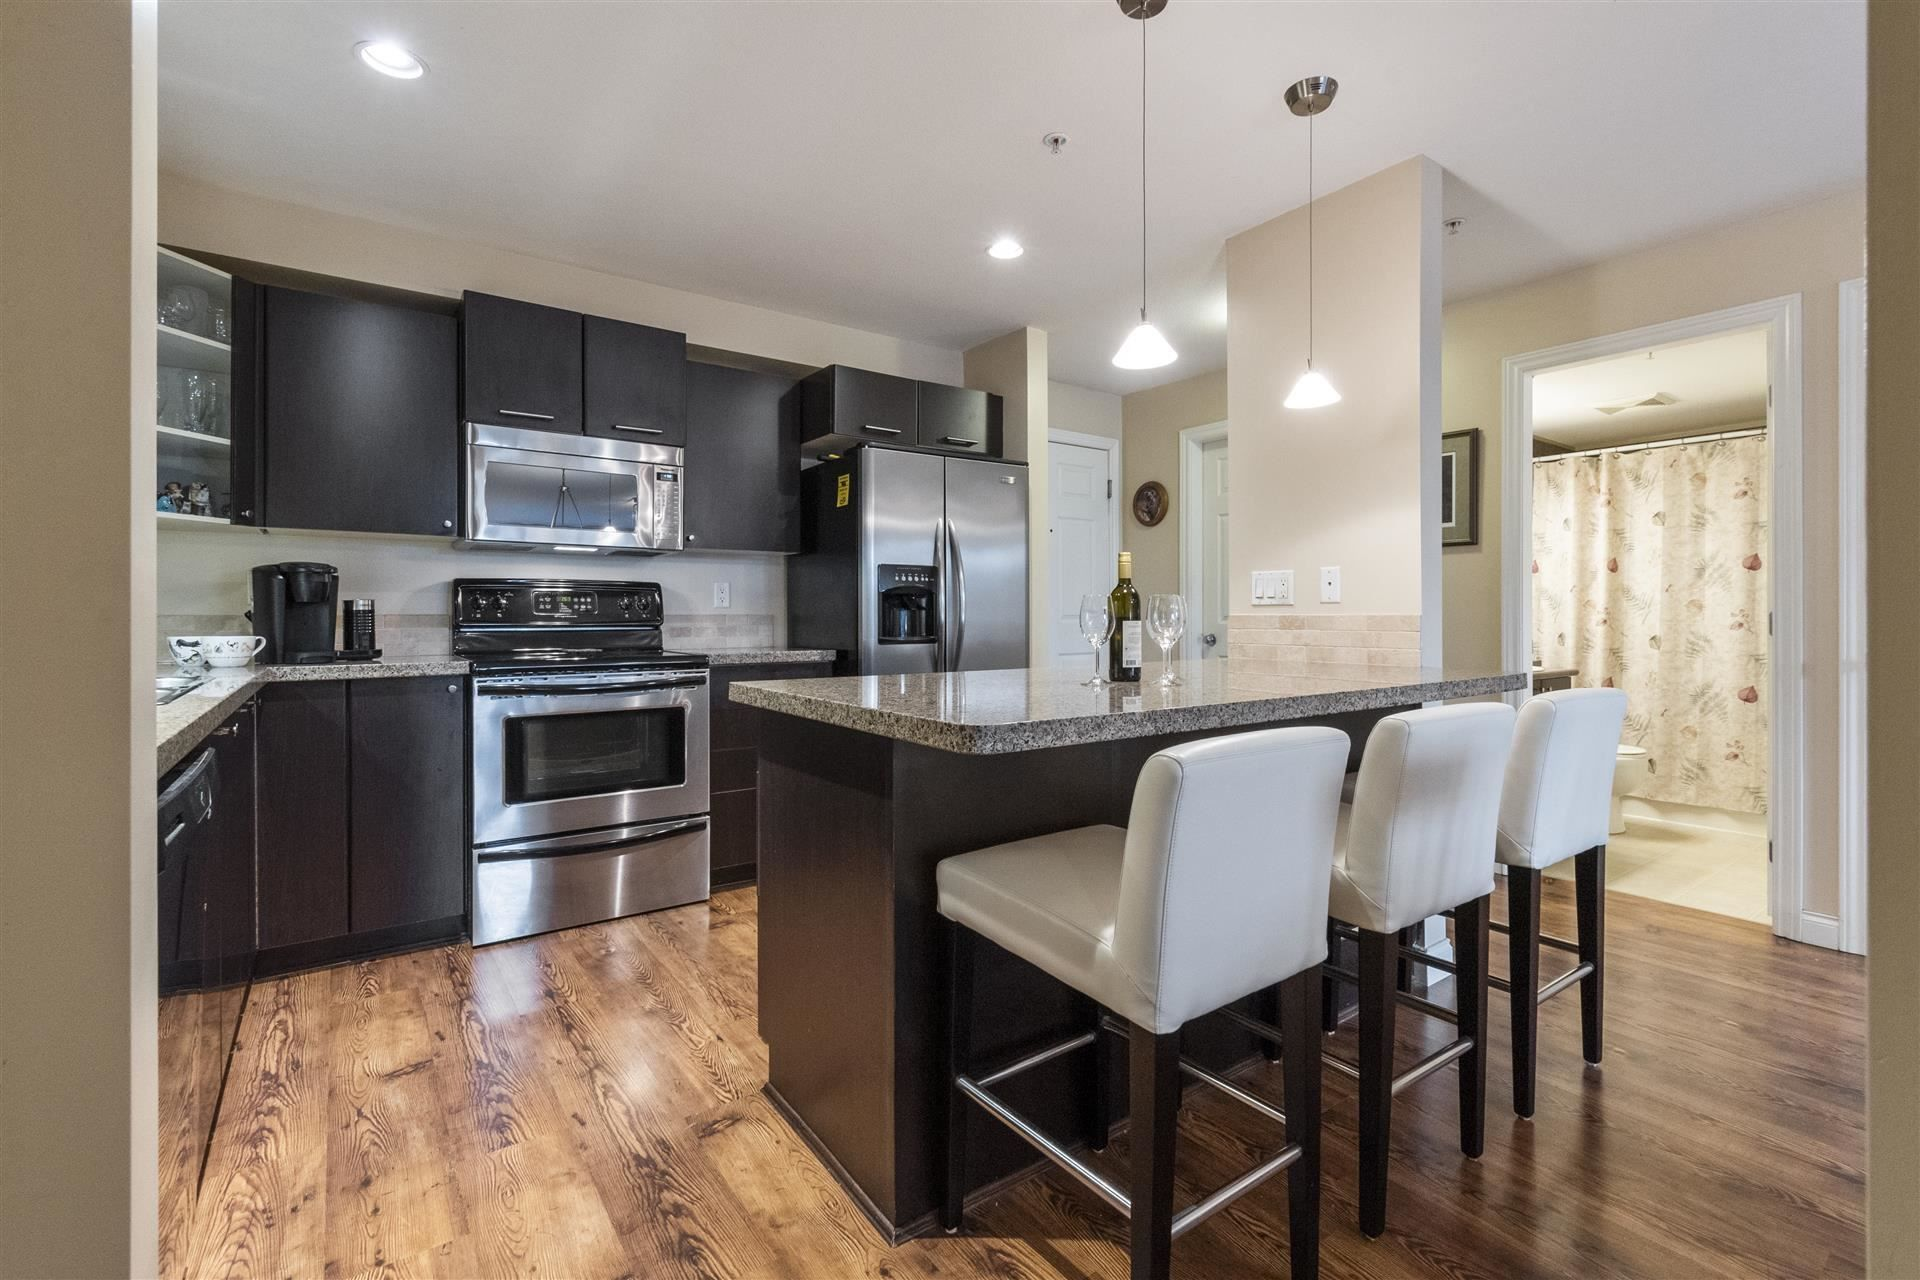 """Main Photo: 108 5474 198 Street in Langley: Langley City Condo for sale in """"Southbrook"""" : MLS®# R2602128"""